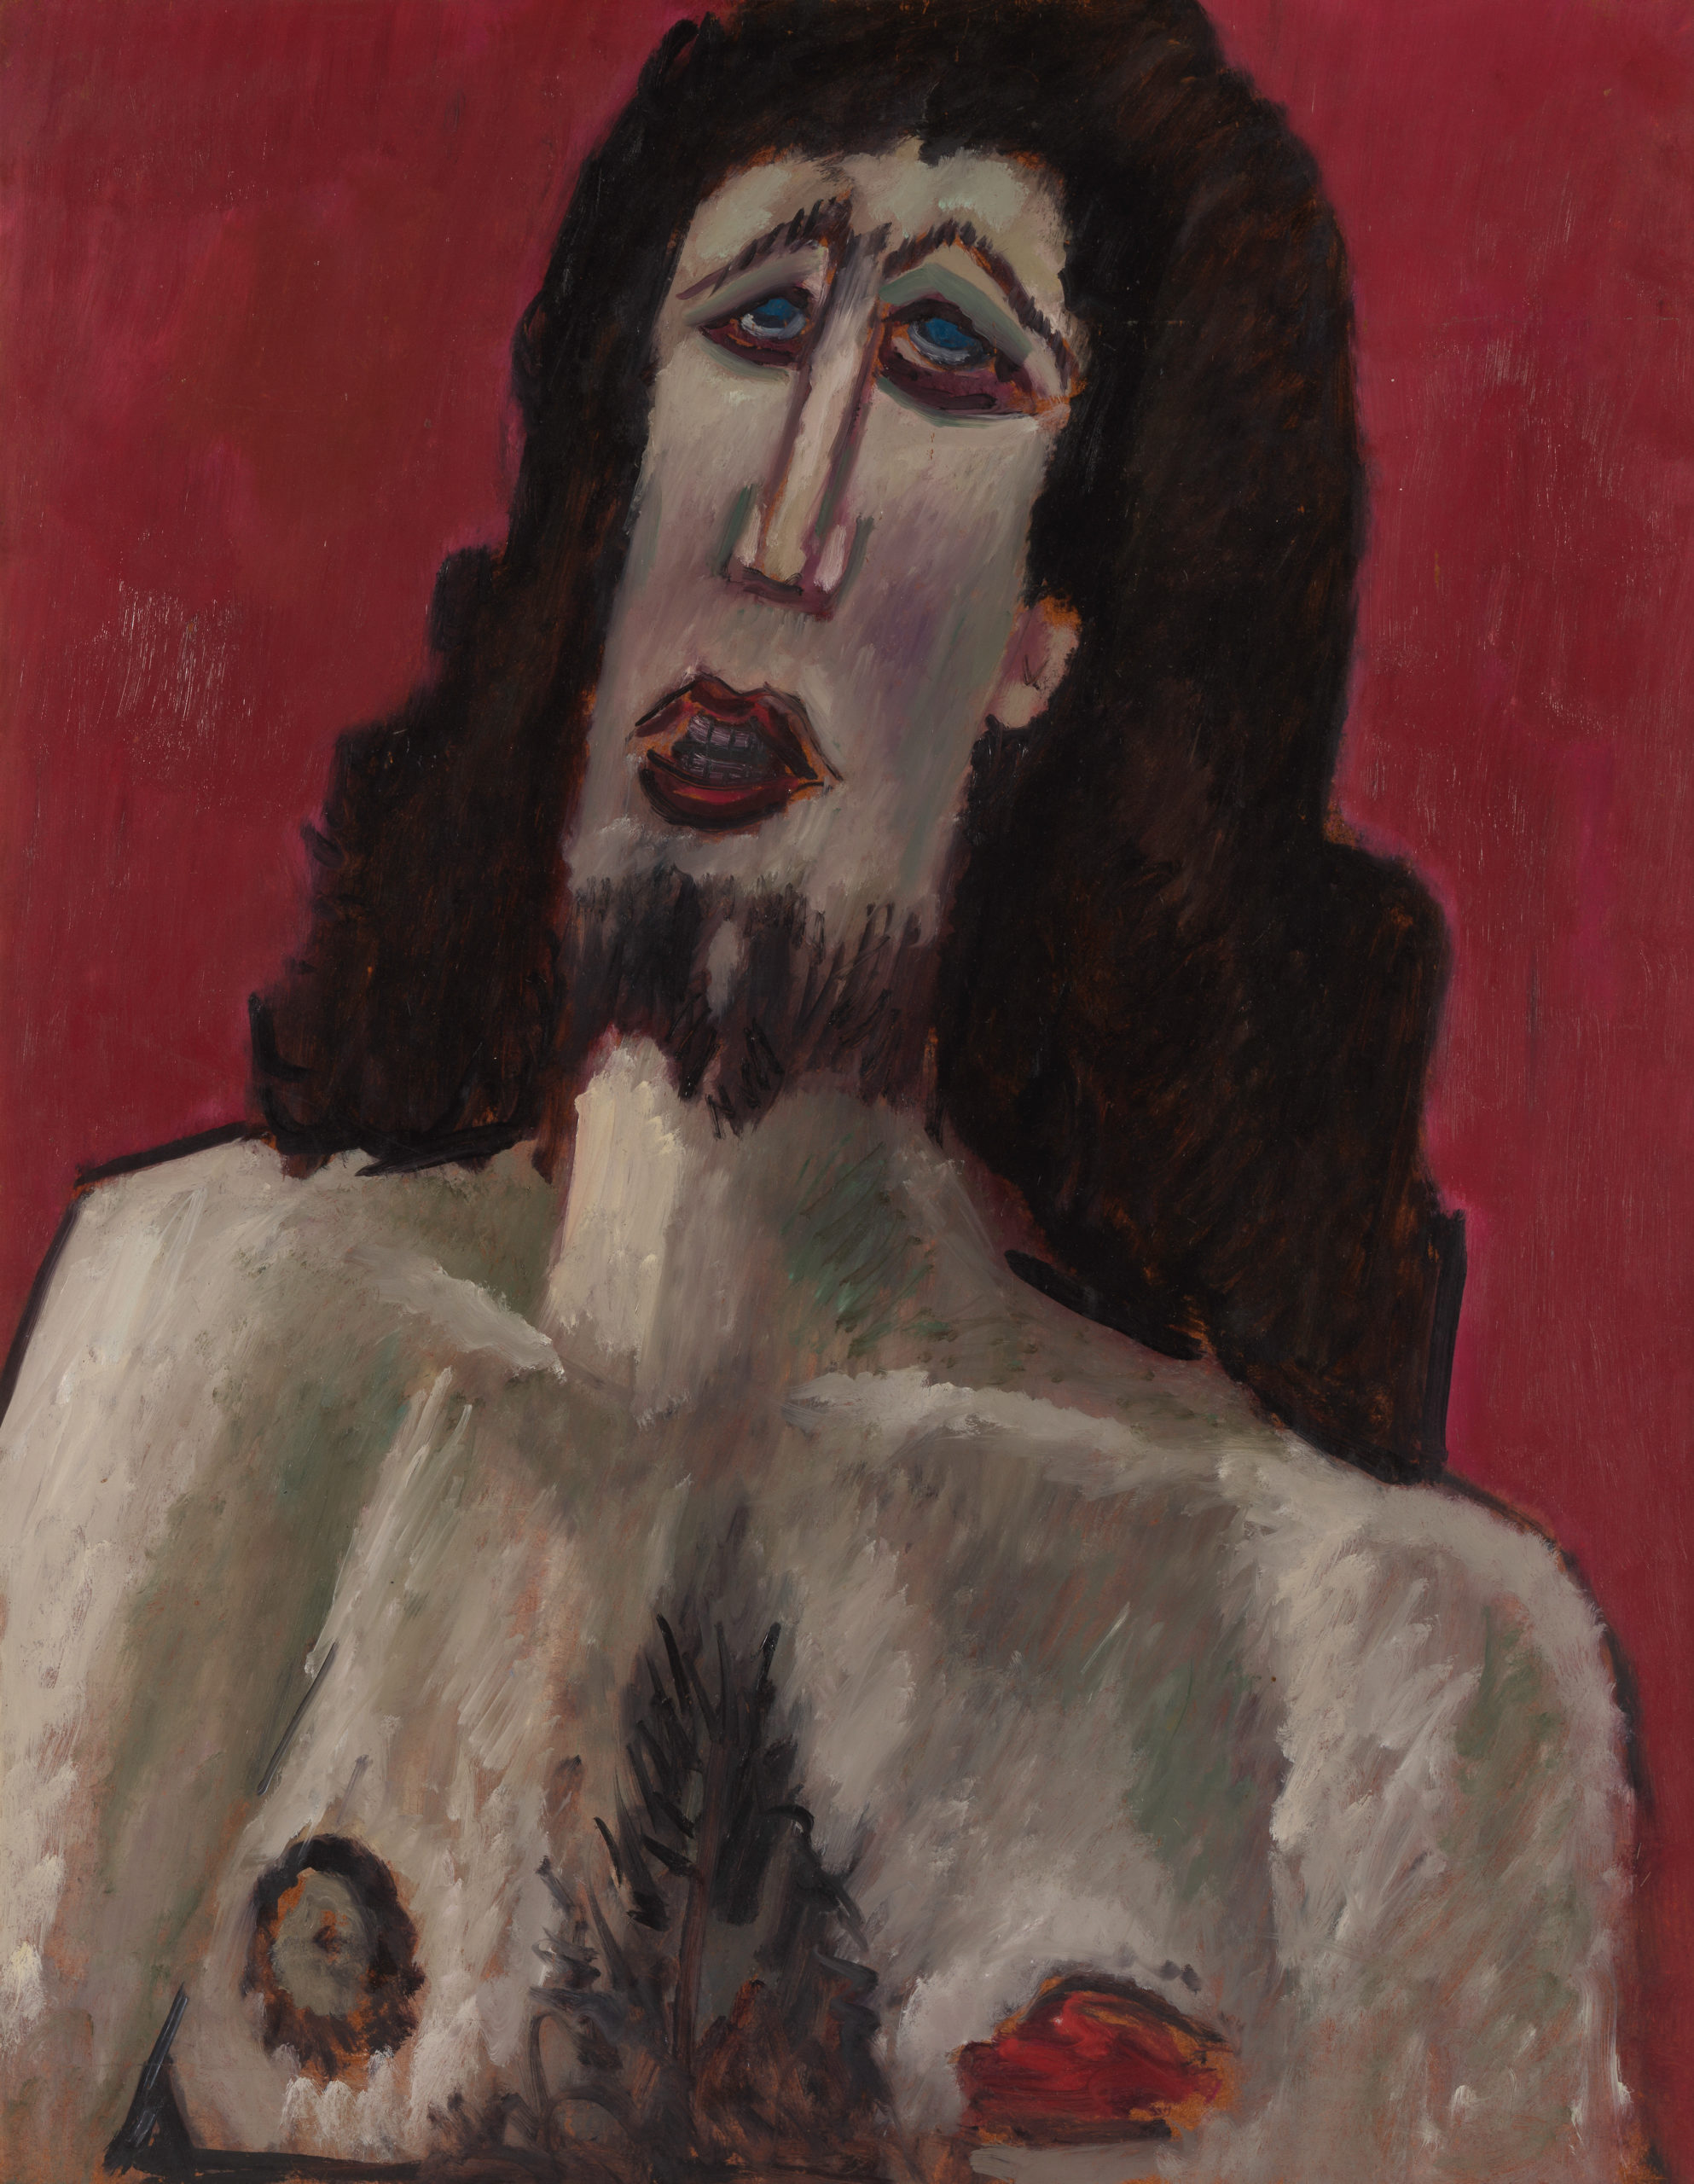 A bust portrait of Christ with short, rough brush strokes, on a red background.